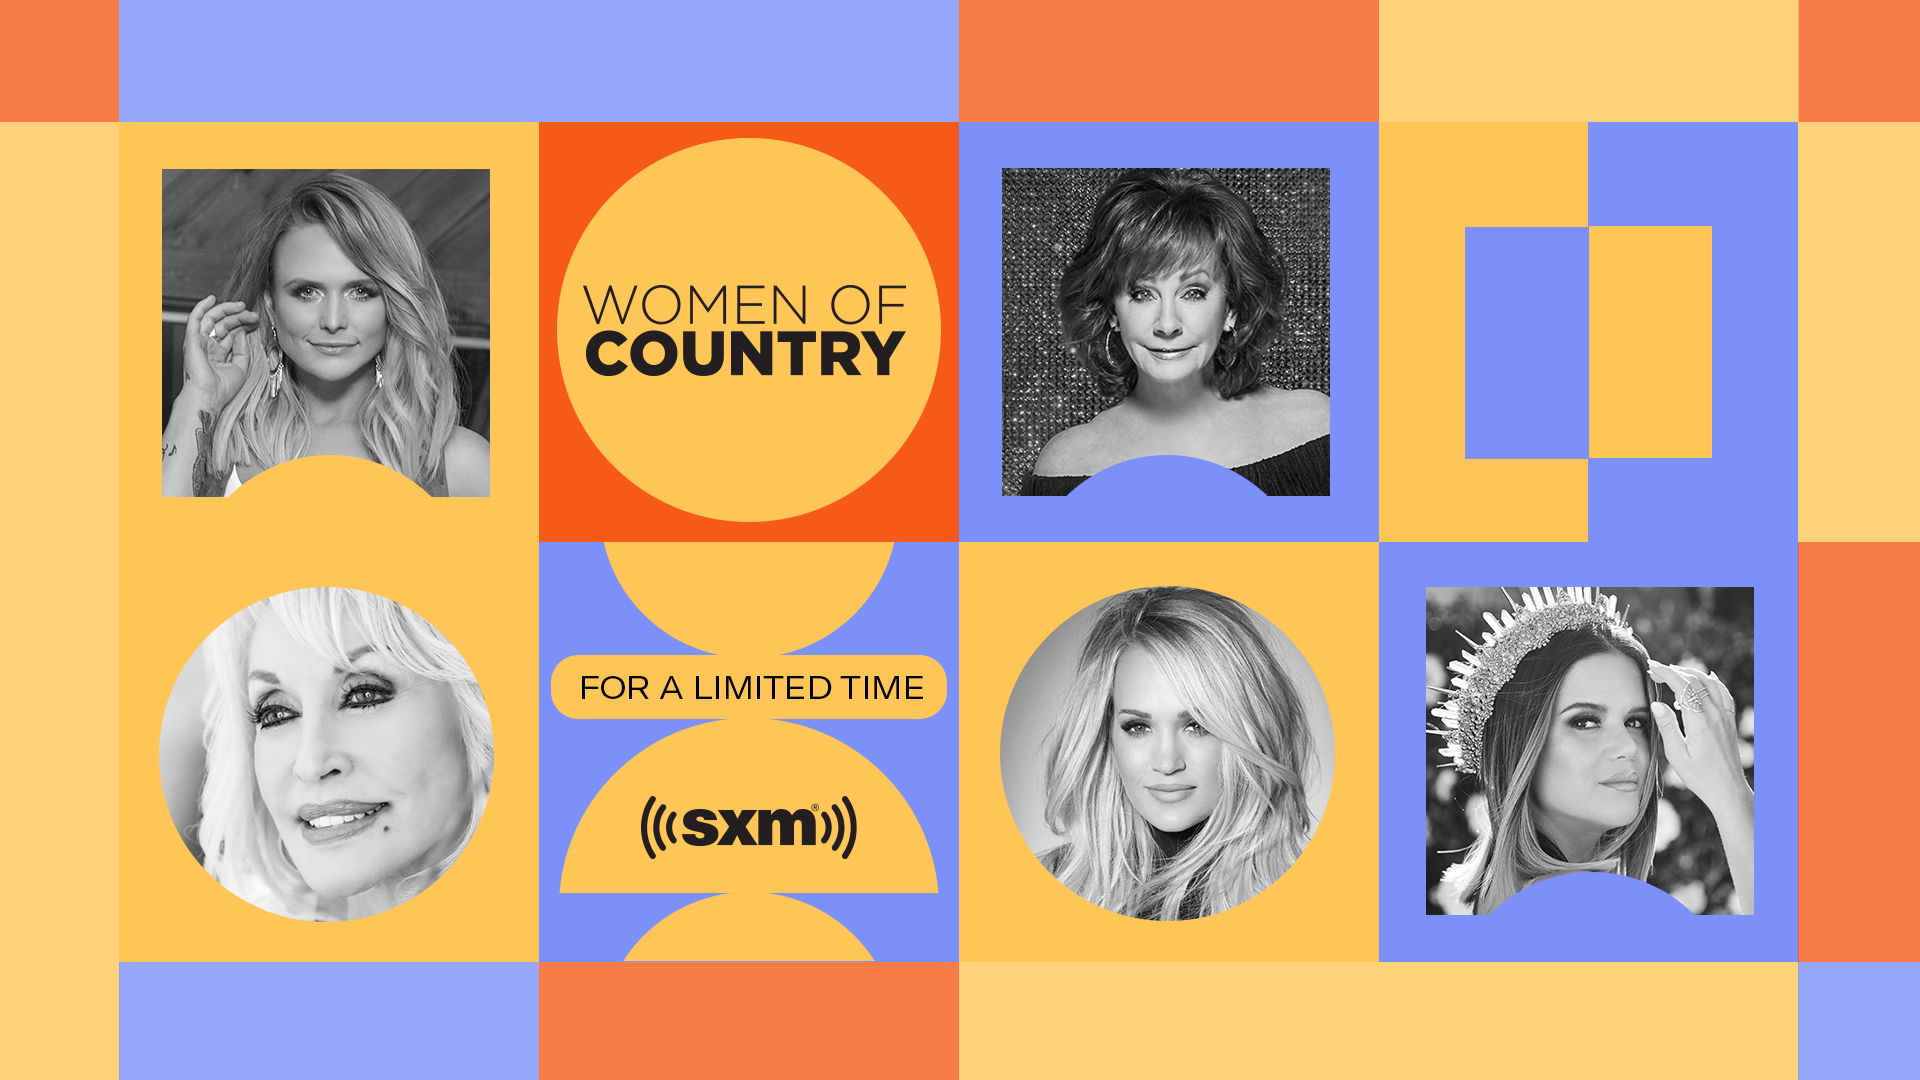 Tip your hats to the barrier-breaking women of country music on an all-new channel